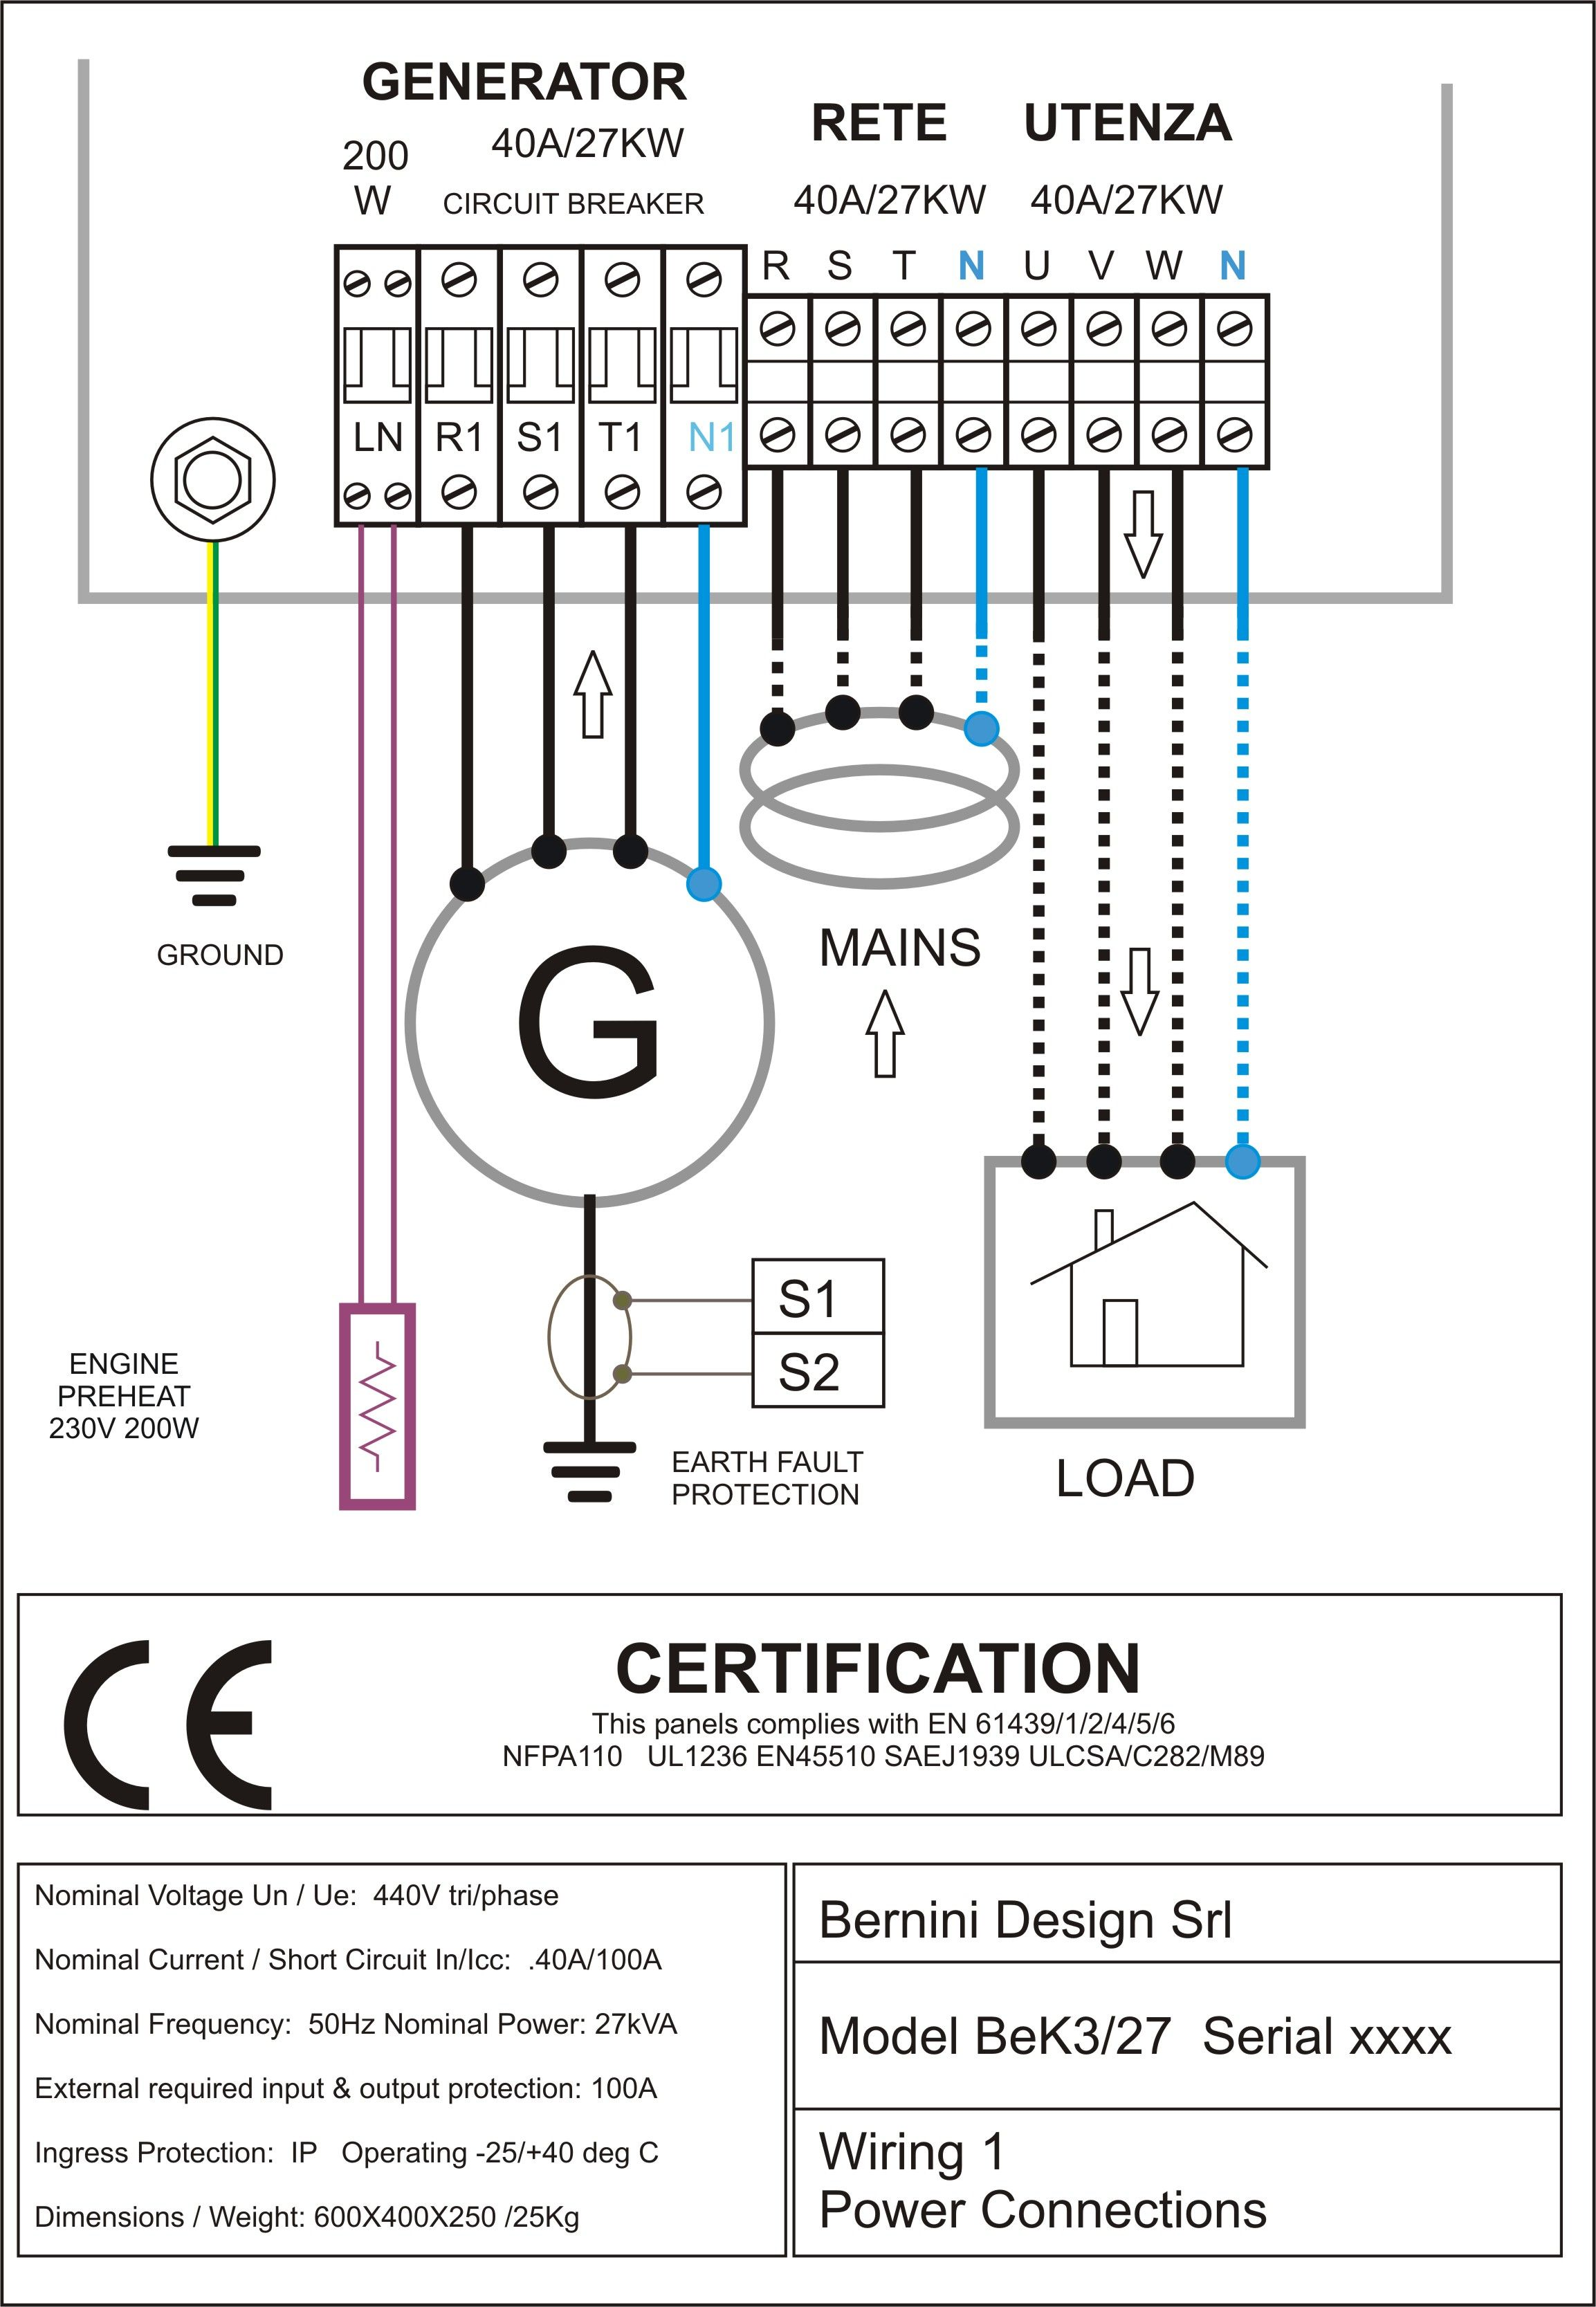 olympian generator control panel wiring diagram wiring diagram connection diagram olympian generator [ 2307 x 3335 Pixel ]